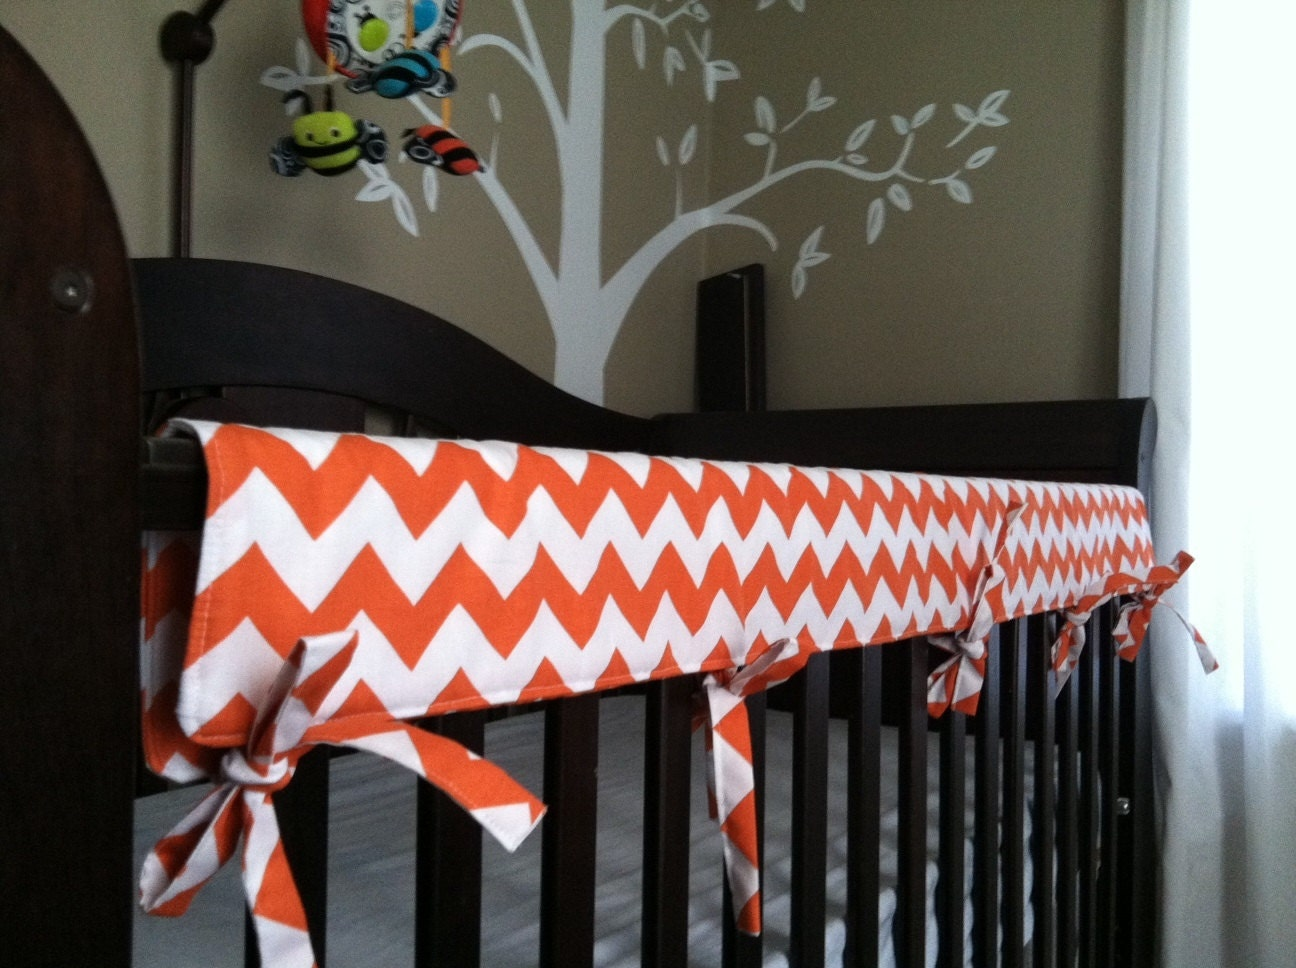 Crib Teething Rail Padded Cover With Fabric Ties 51 Inches